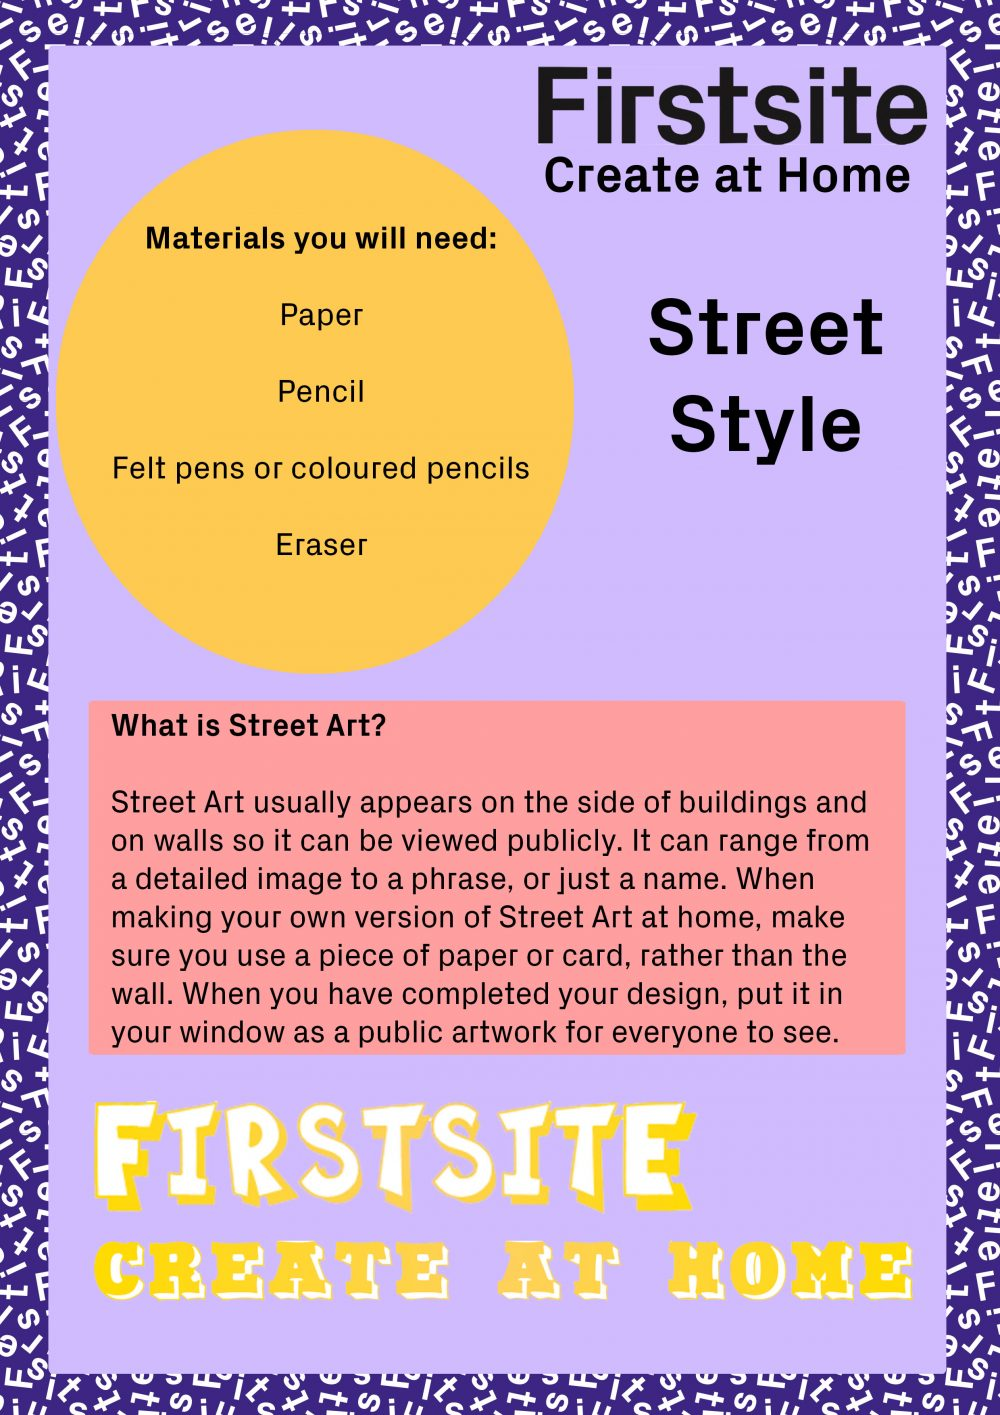 Firstsite Create at Home Street Art Style Activity instructions 1 of 2